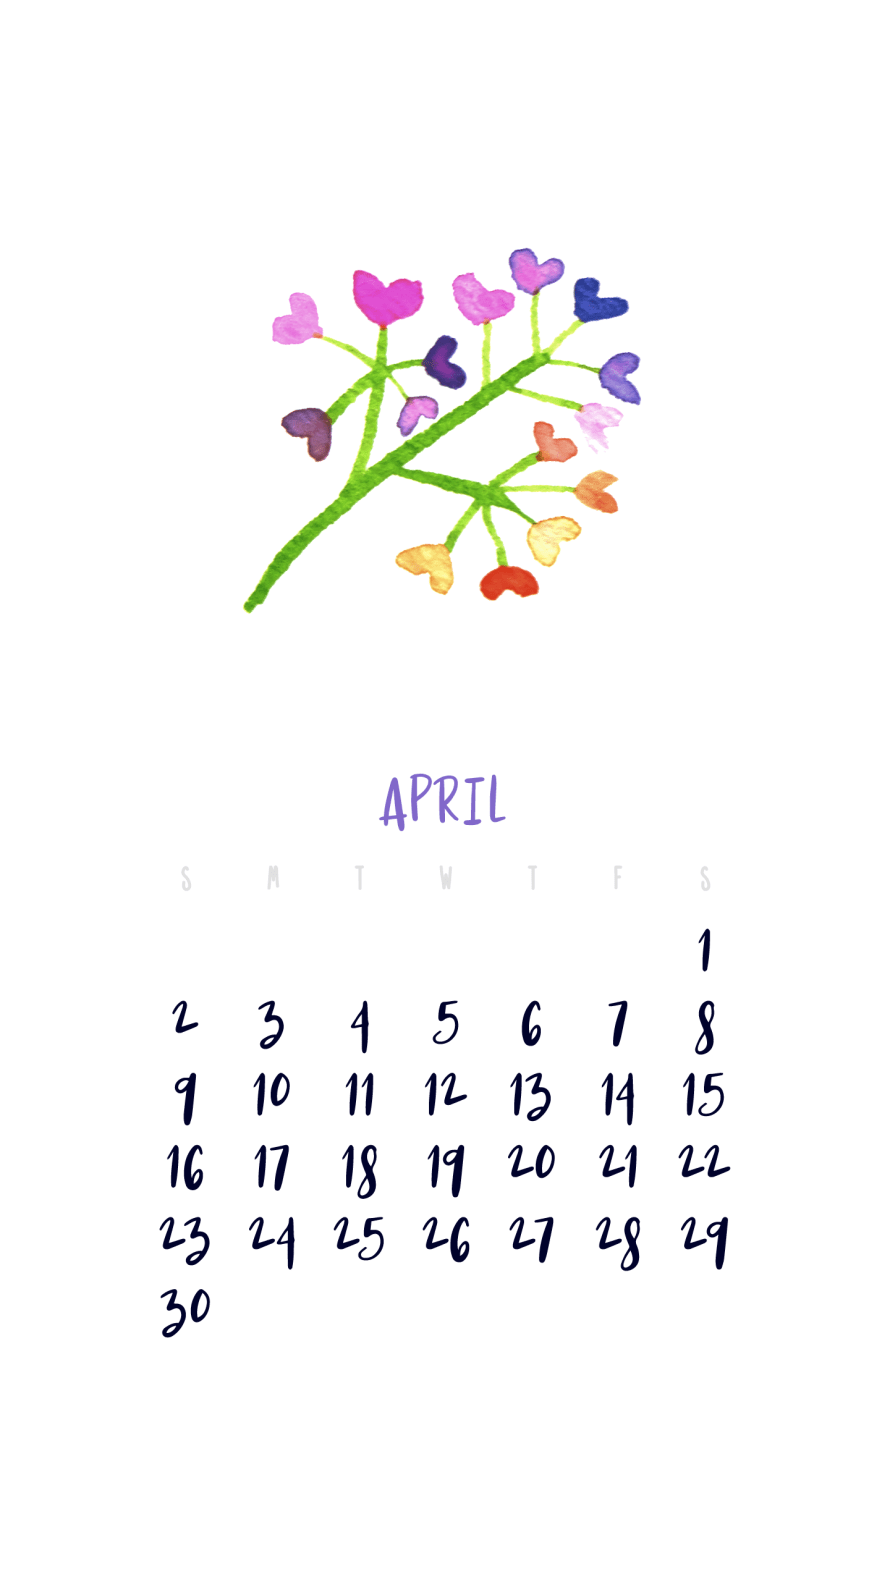 I Try DIY | April 2017 Smartphone Wallpaper Calendar